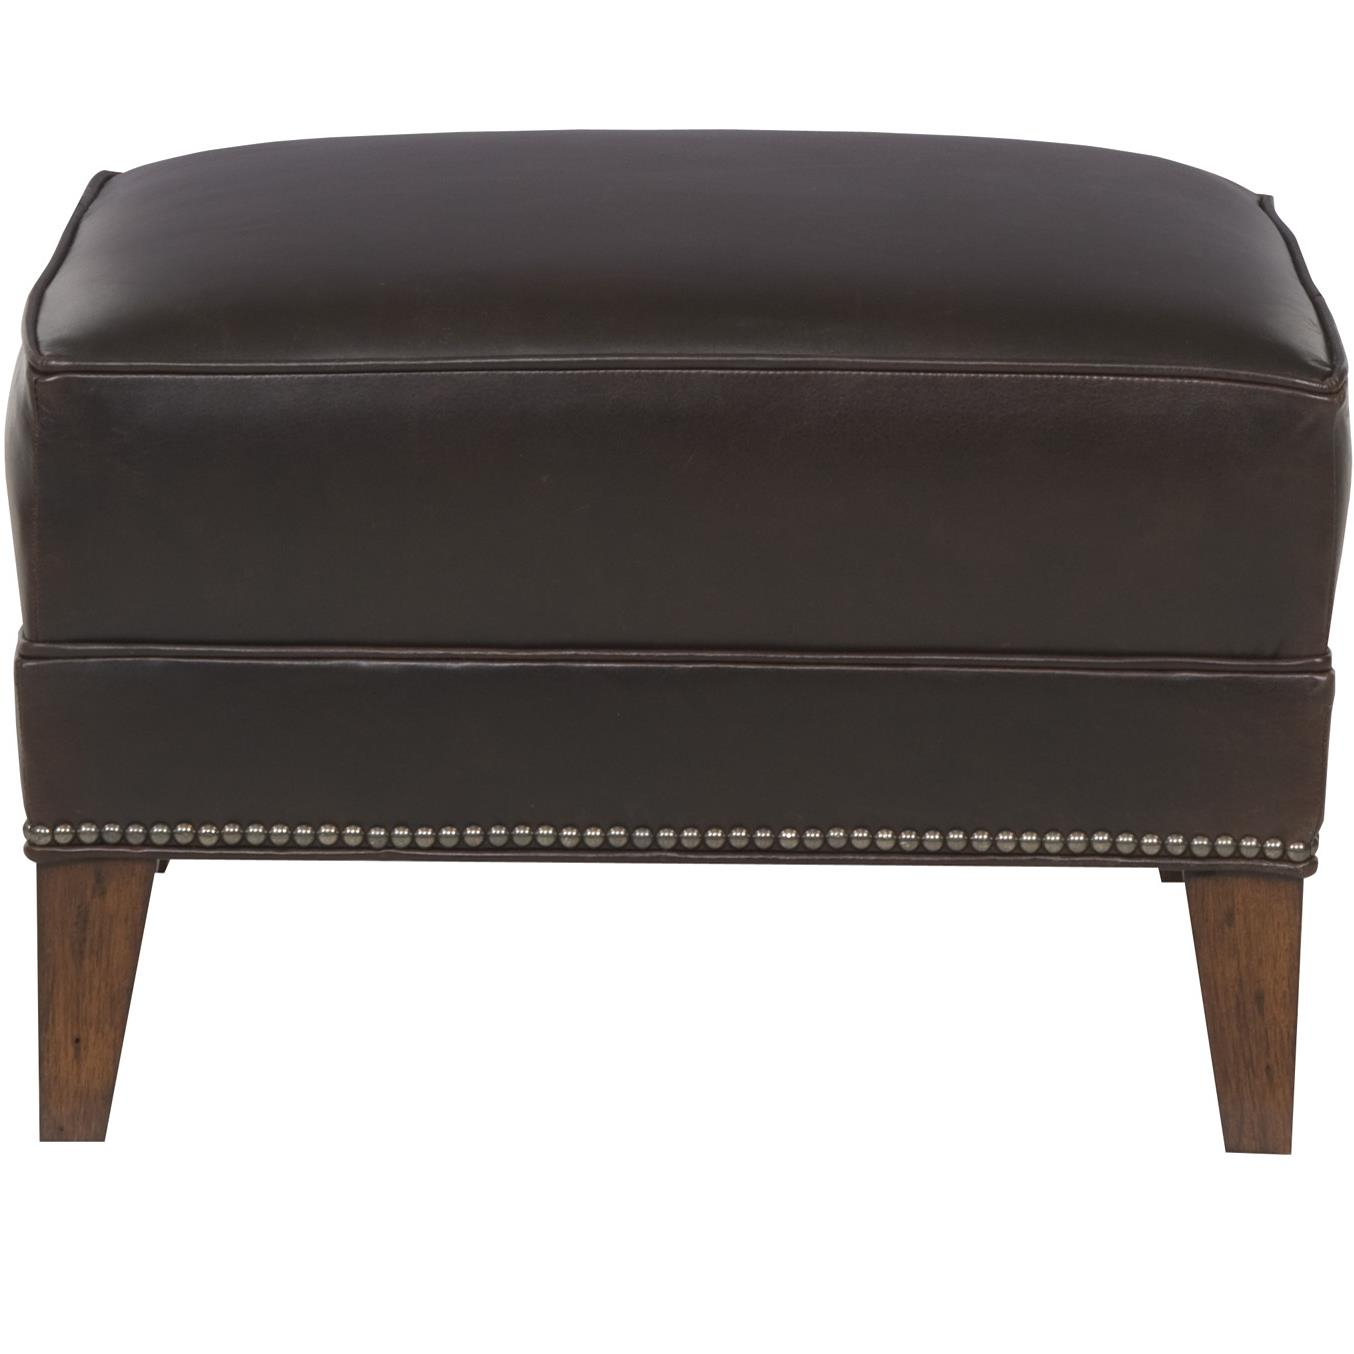 Ginger Traditional Ottoman by Vanguard Furniture at Baer's Furniture